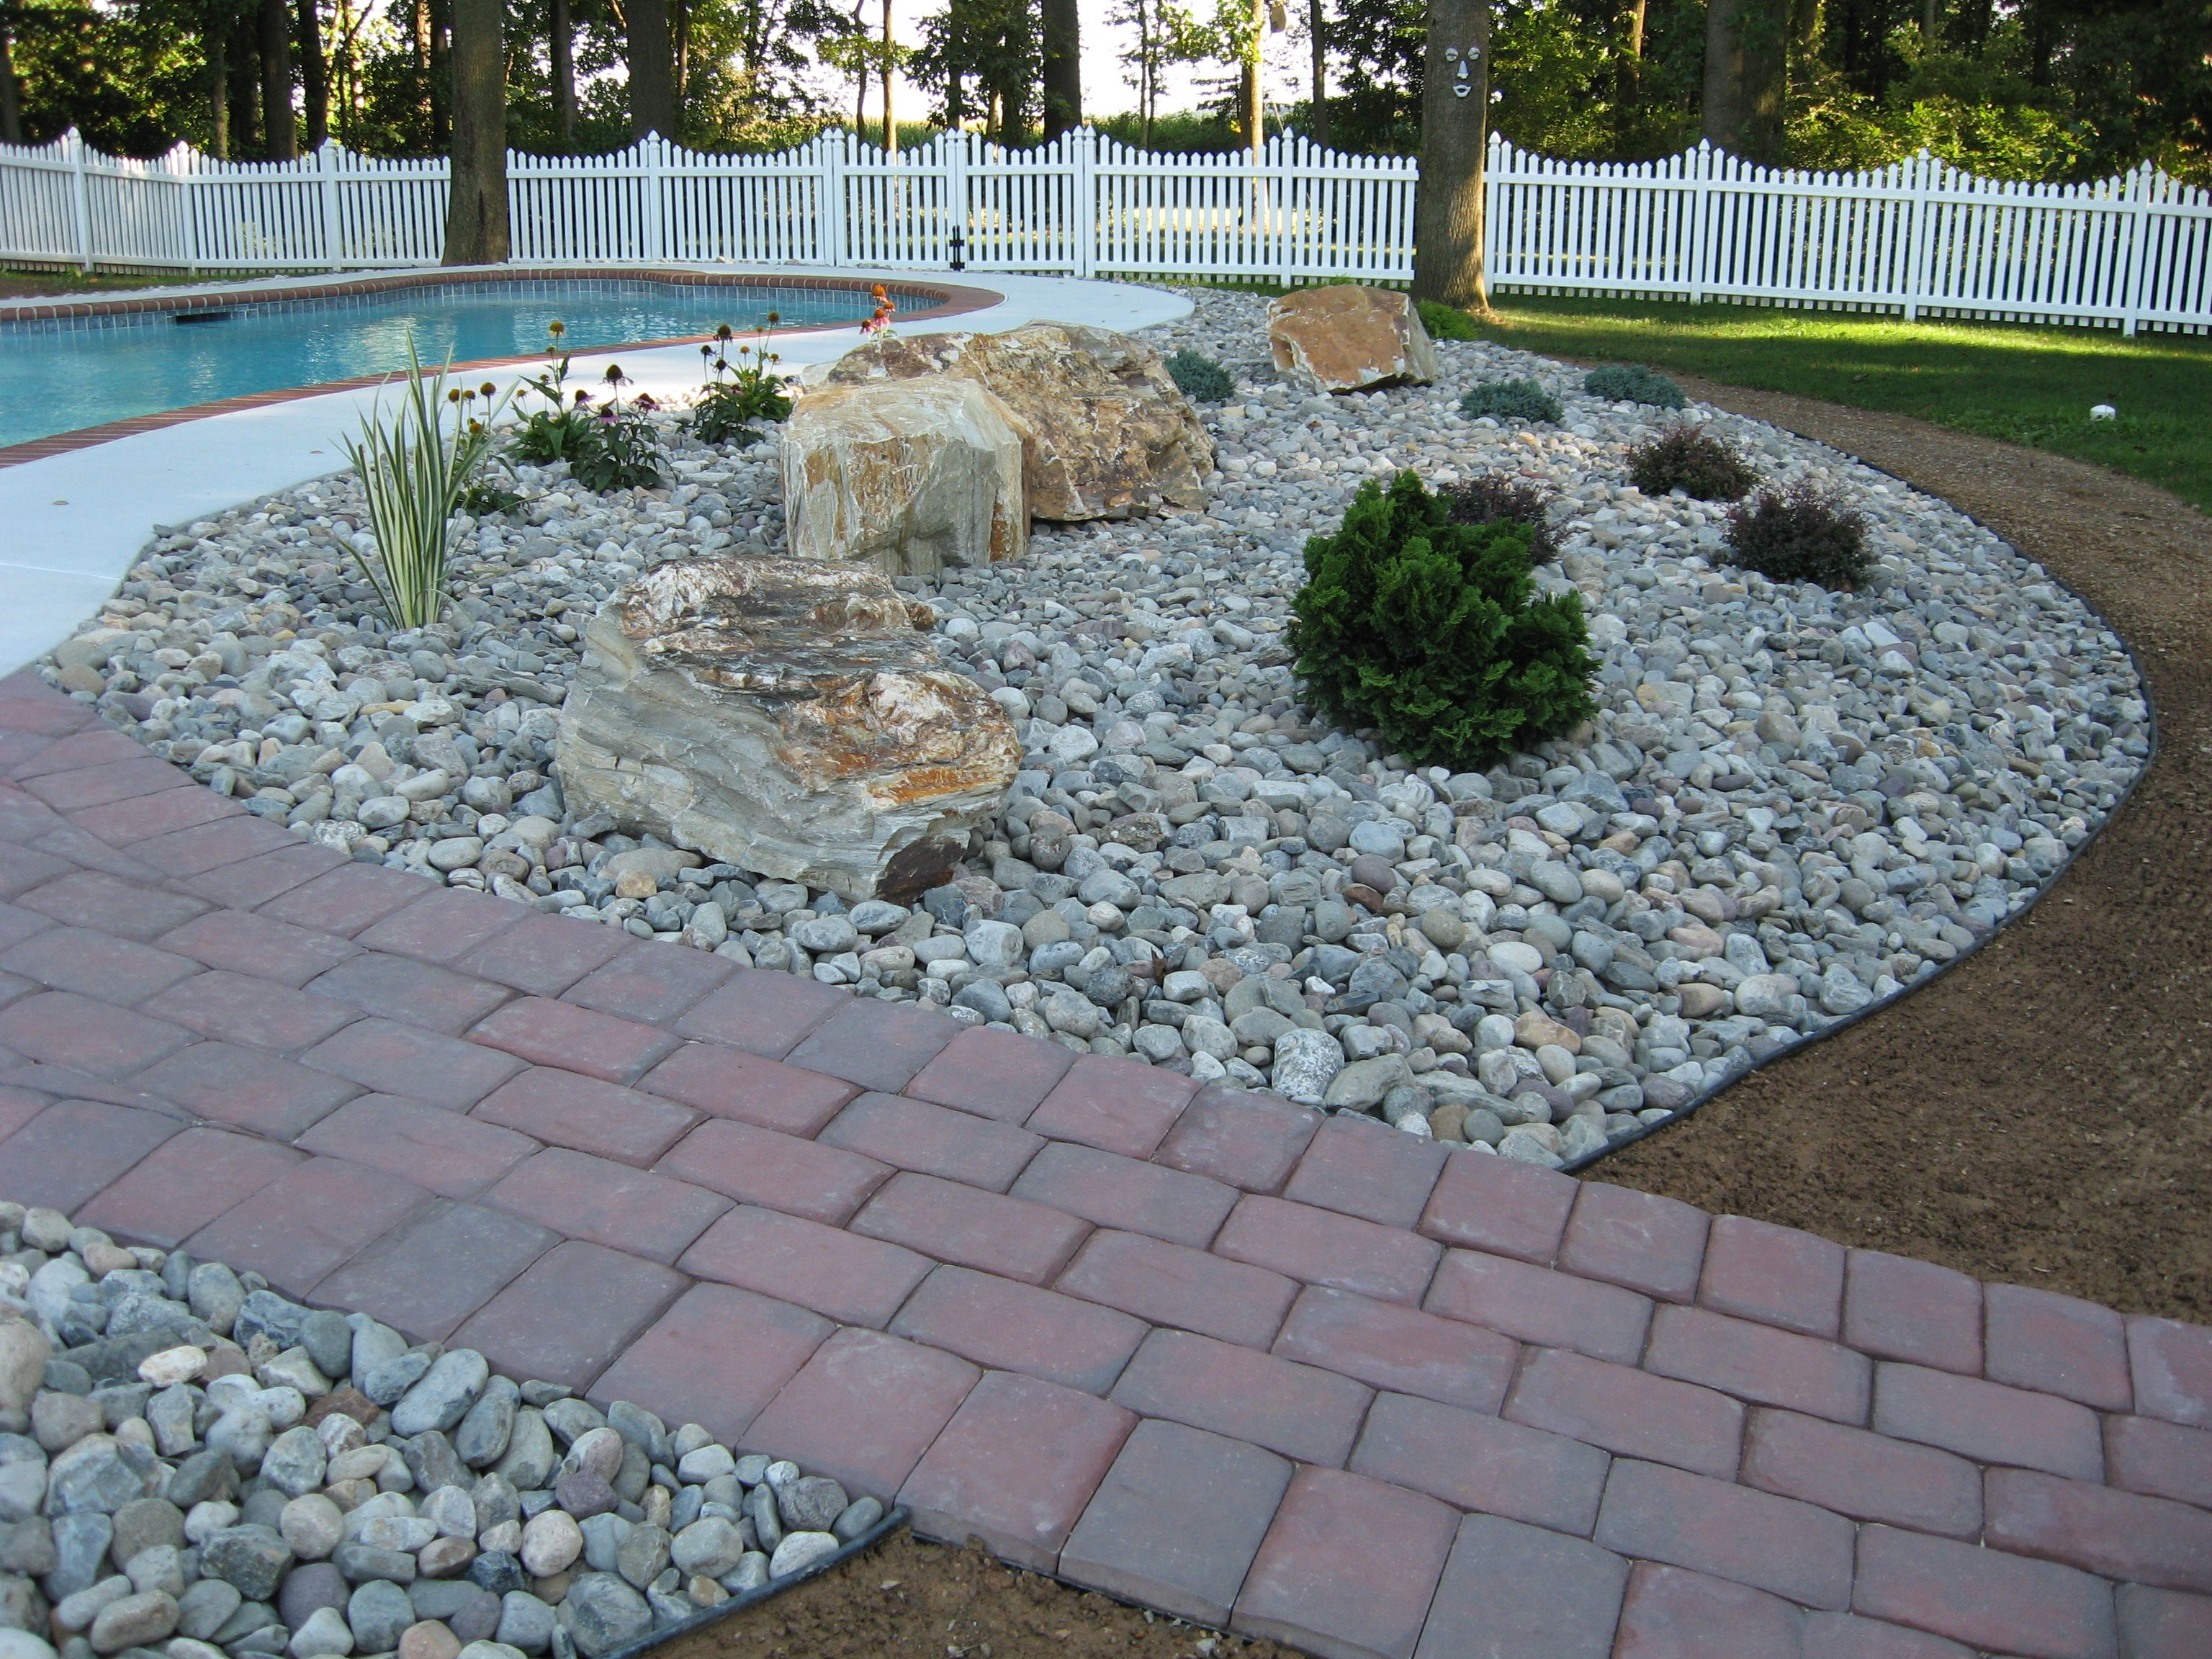 Delicieux Landscaping With Rocks And Stones | River Stones U0026 Boulders With Poolside  Plantings